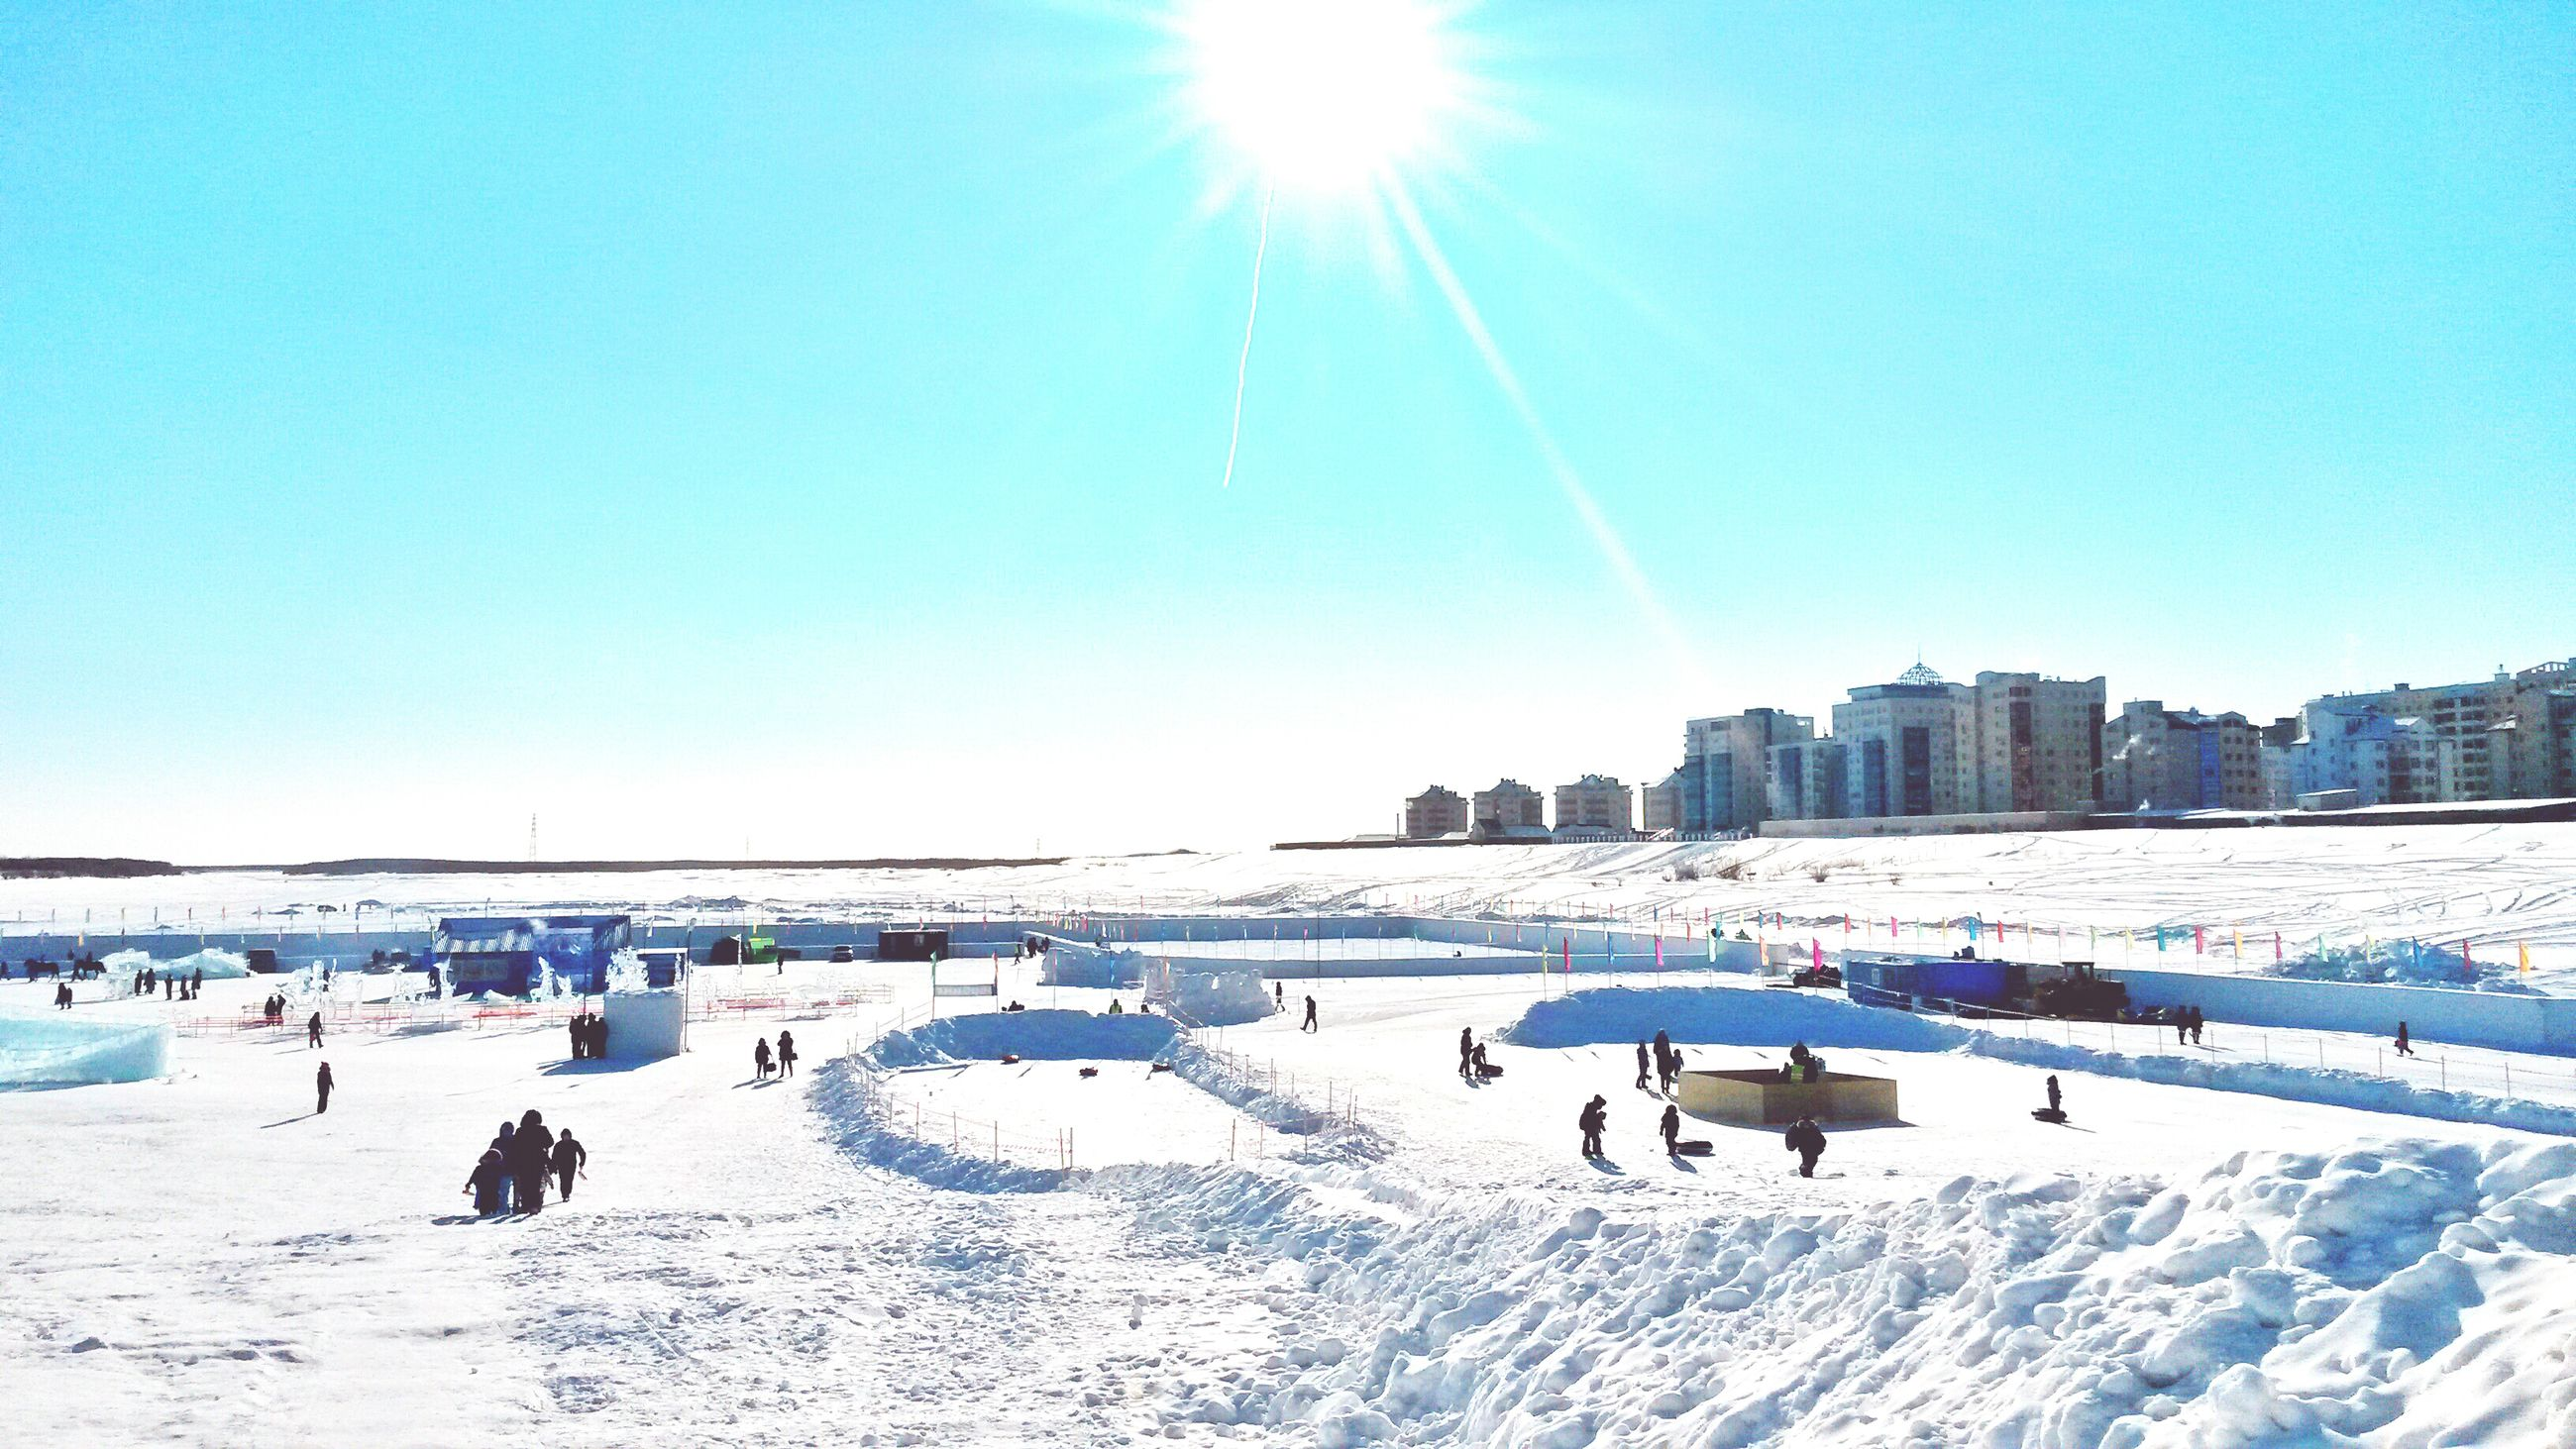 snow, winter, cold temperature, clear sky, season, blue, leisure activity, sunlight, large group of people, sun, lifestyles, men, built structure, vacations, copy space, covering, architecture, tourist, frozen